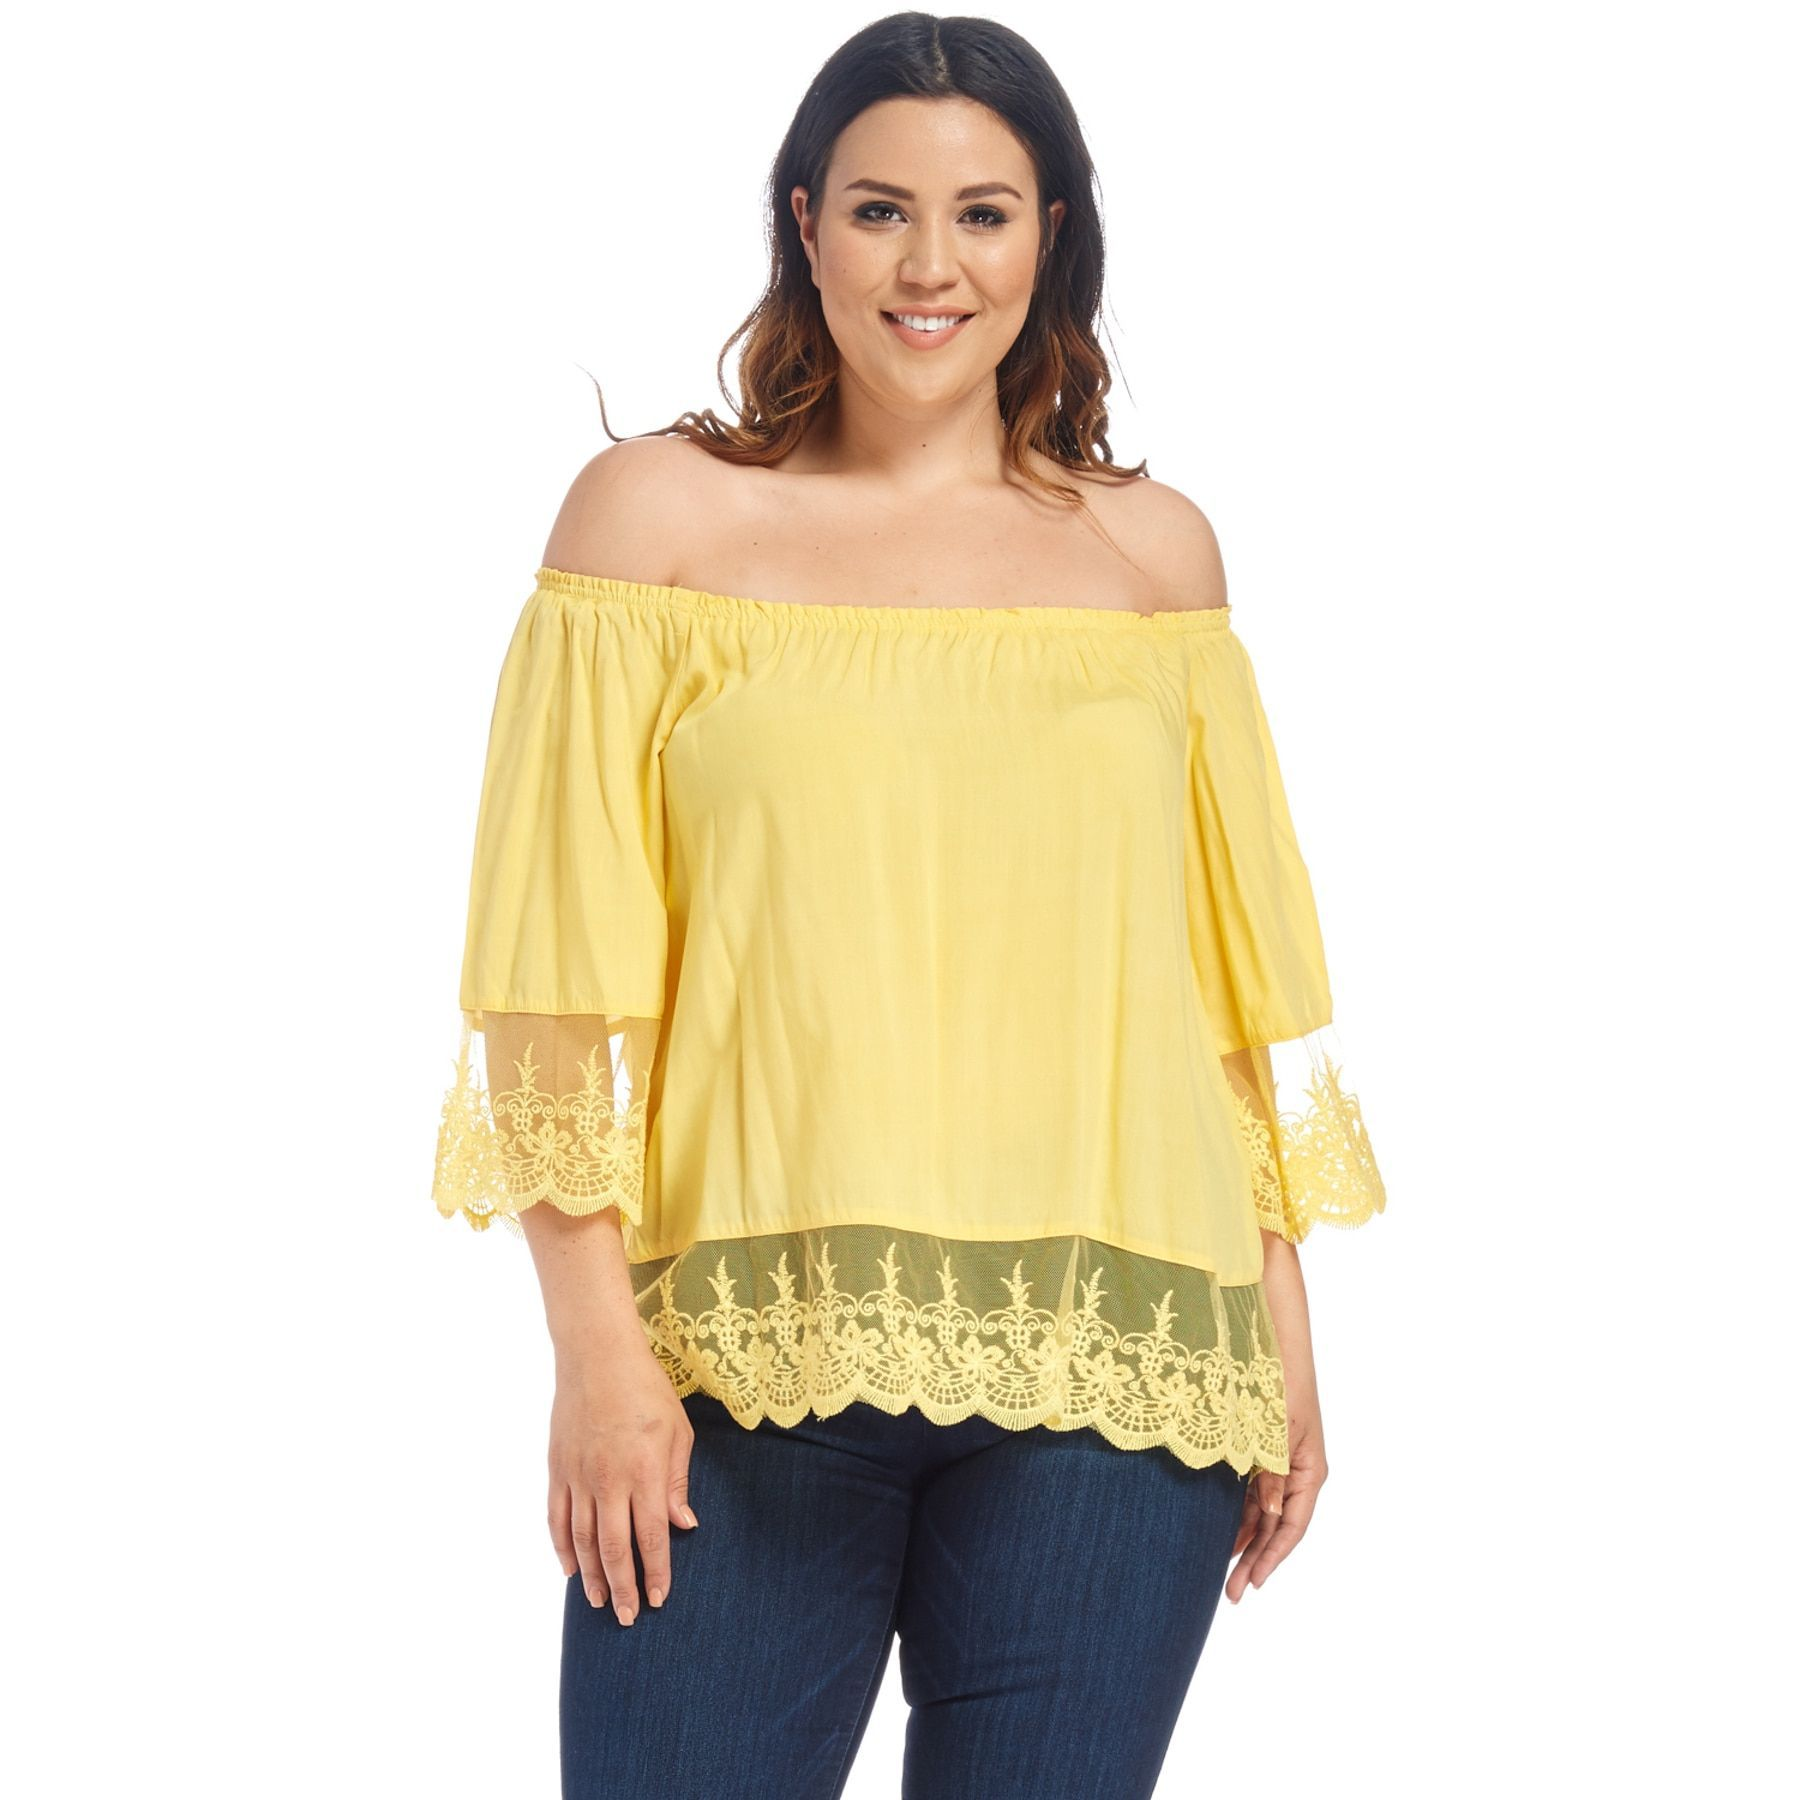 a476af2f65f50 Hadari Xehar Women s Plus Size Casual Off Shoulder Blouse Shirt Tops ...